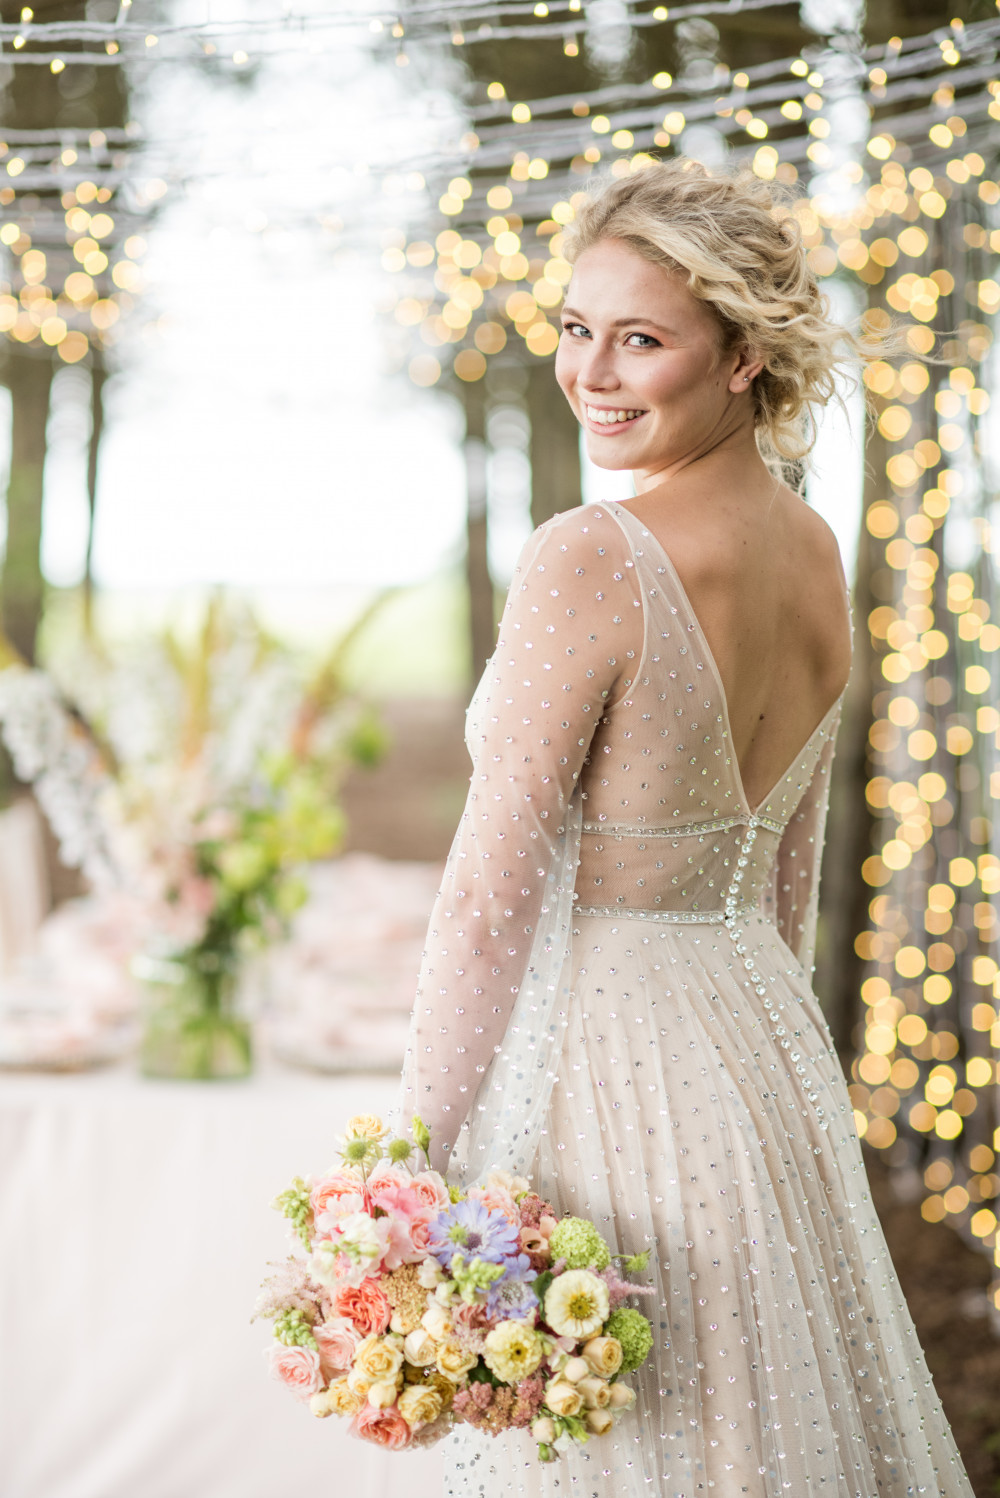 Featured over on Brides Up North, this look was created at Bunny Hill with Little Pearl Bridal gowns -- sherbet/ pastel tones were the inspiration. A celebration of all things spring romance. - Make Me Bridal Artist: Chrys Chapman. Photography by: Jane Beadnell. #naturalmakeup #glowingskin #curlyhair #romanticmakeup